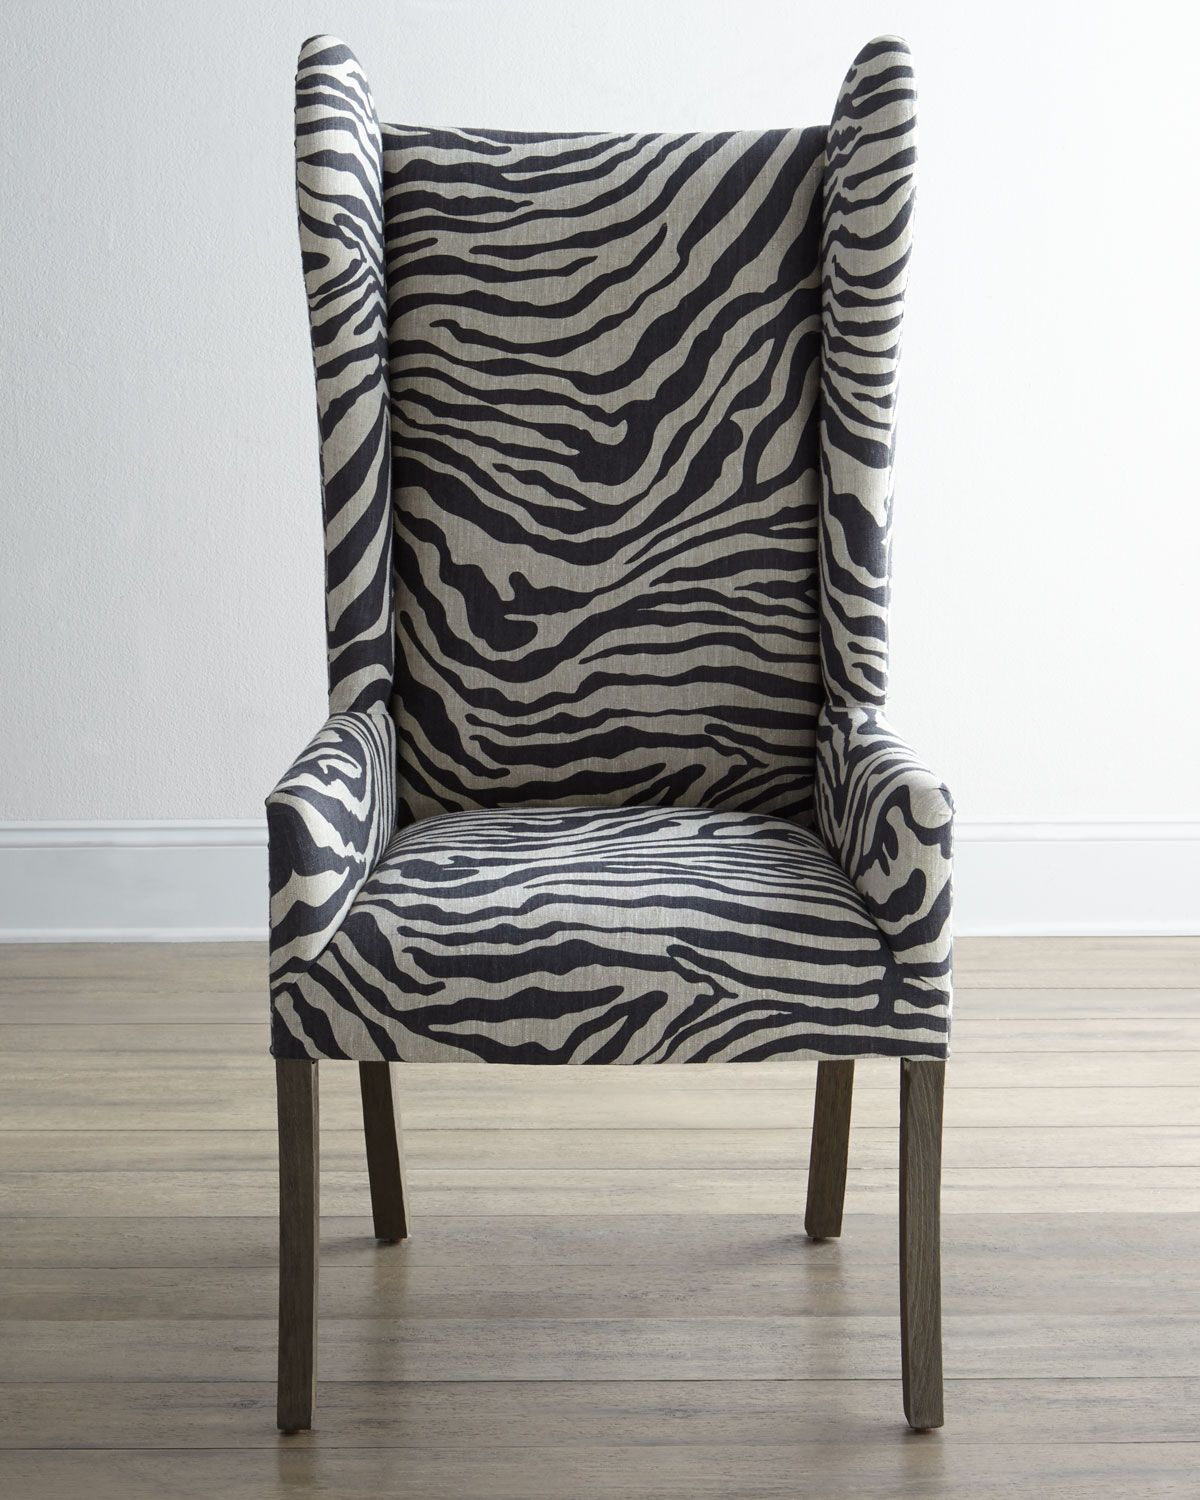 Kayla ZebraPrint Wingback Chair Zebra chair, Wingback